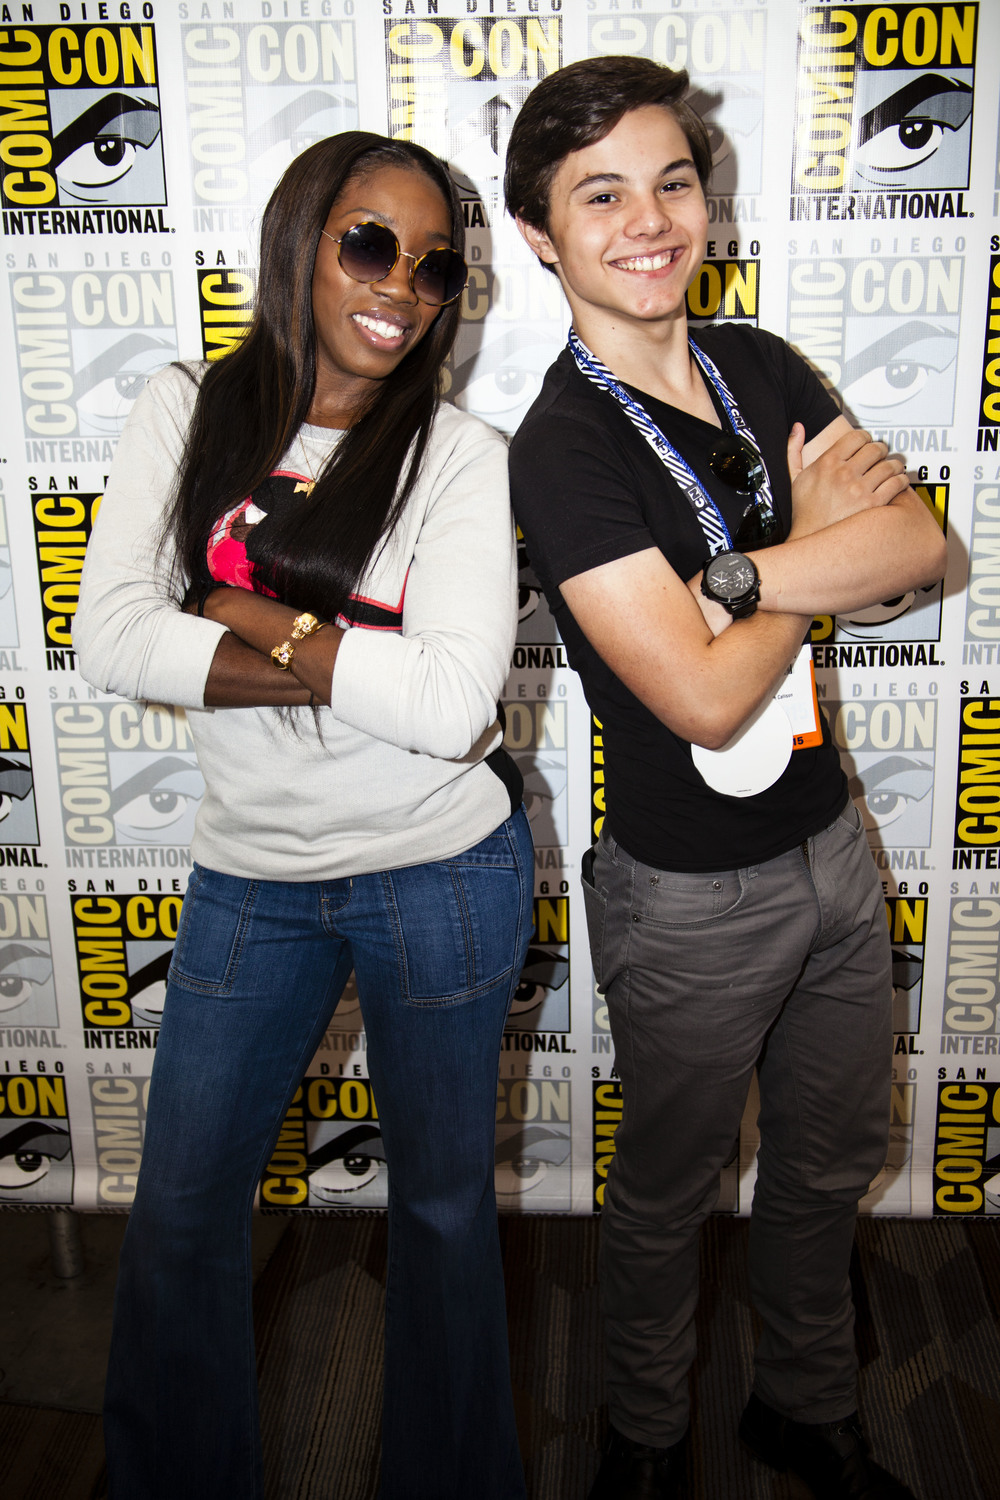 Steven Universe's Zach Callison and Estelle by Joel Feria HIGH.jpg